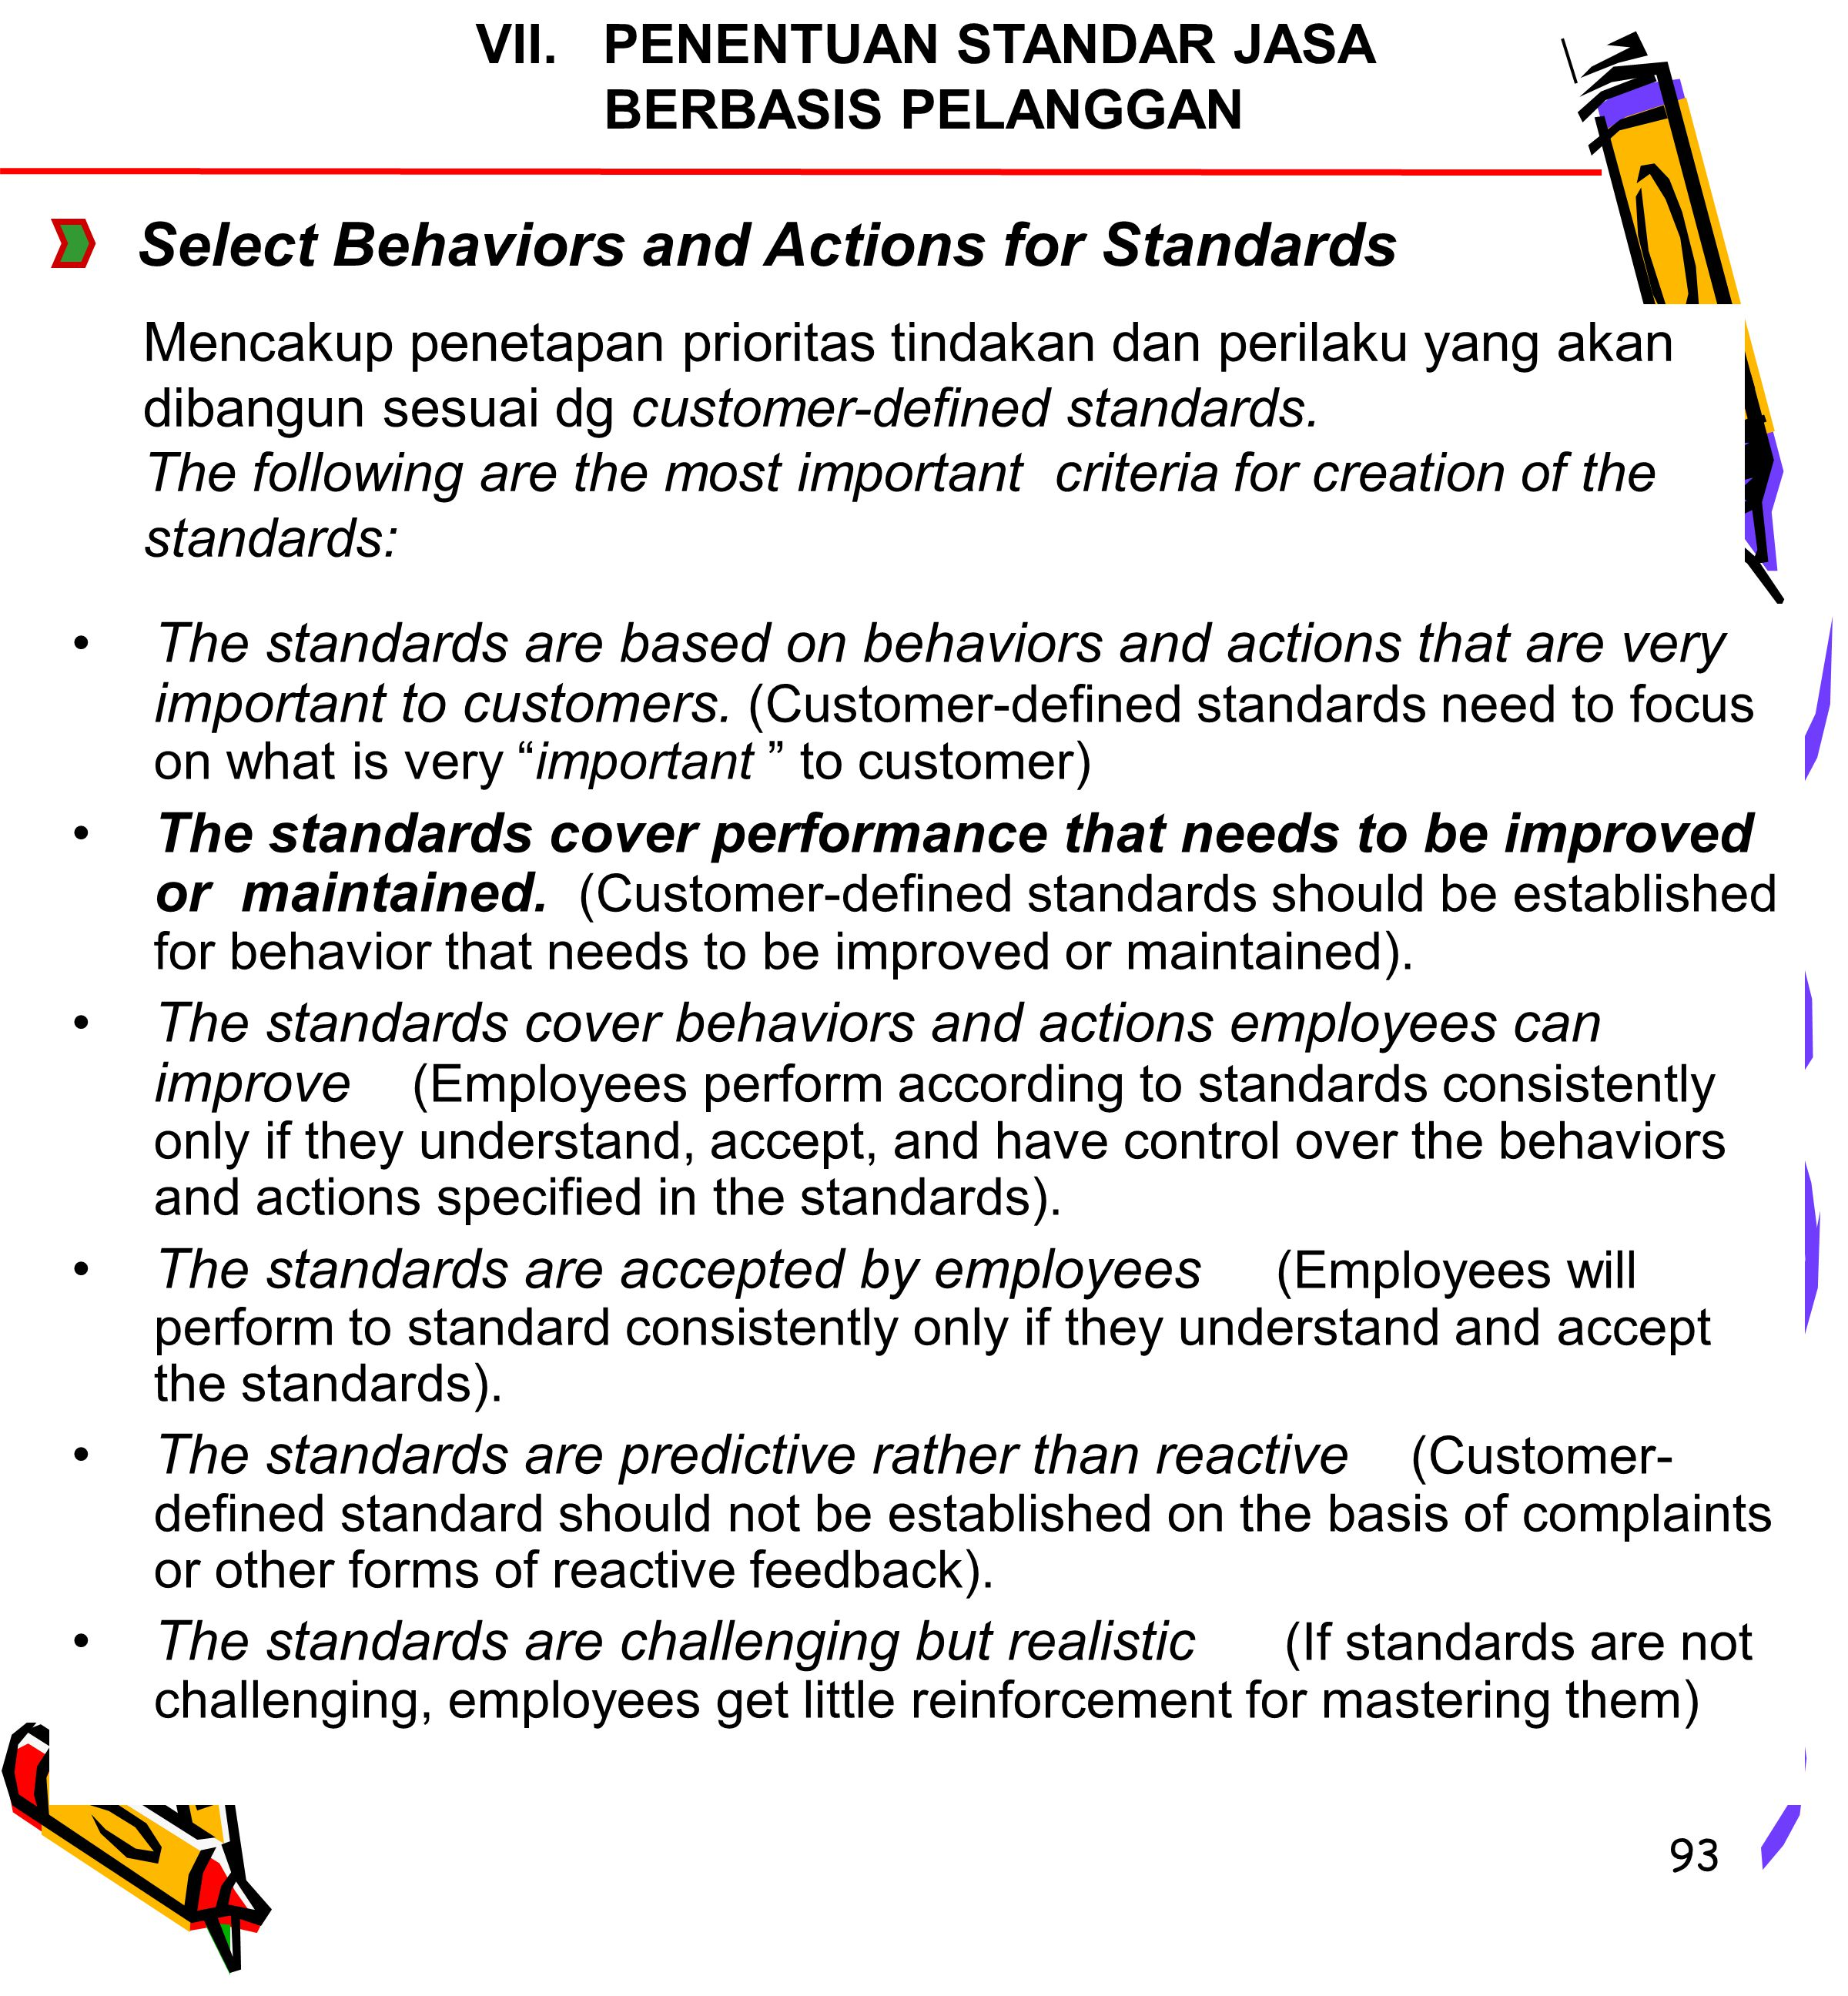 93 The standards are based on behaviors and actions that are very important to customers.